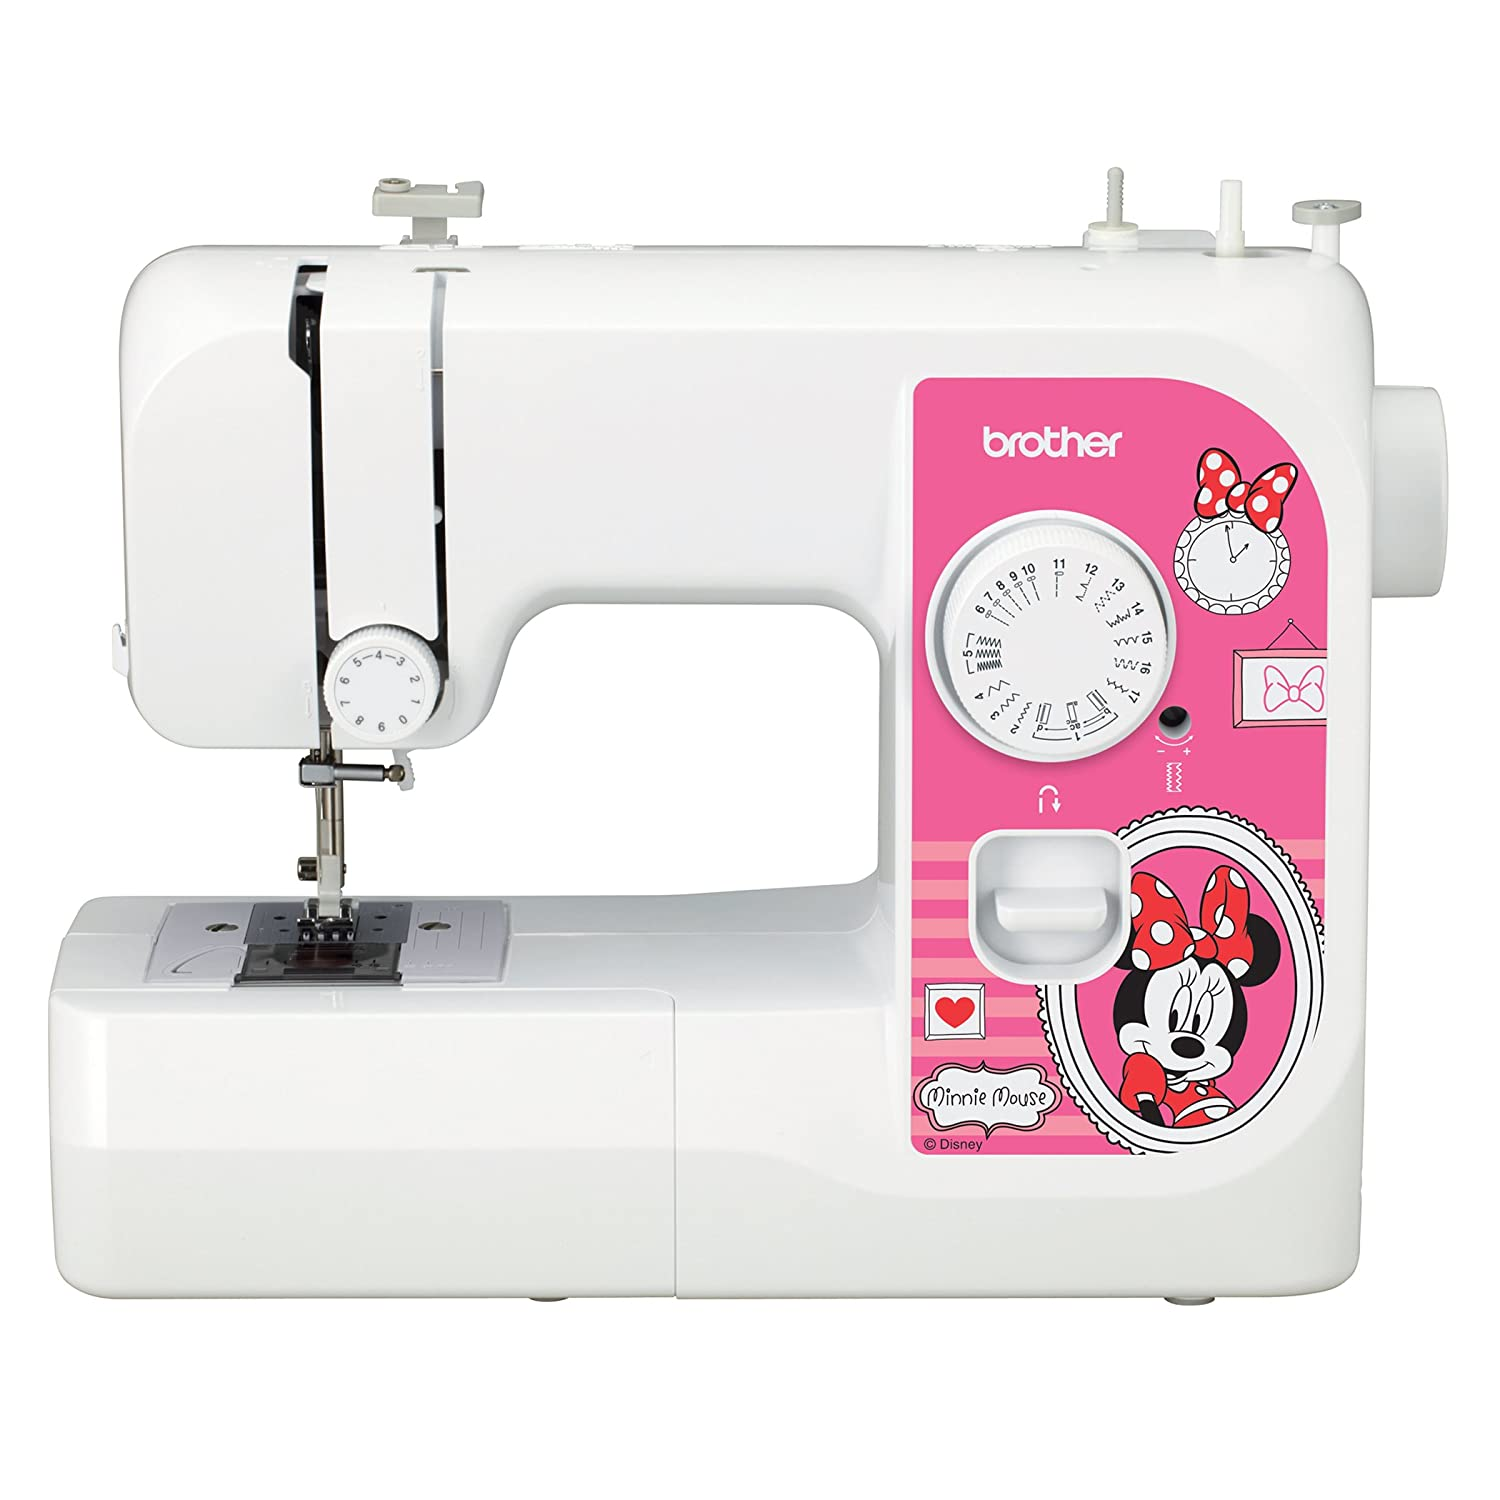 17 Built-in Stitches LED Work Area SM1738D Sewing Machine with 4 Disney Faceplates Disney Dust Cover 4 Sewing Feet Brother Sewing Machine